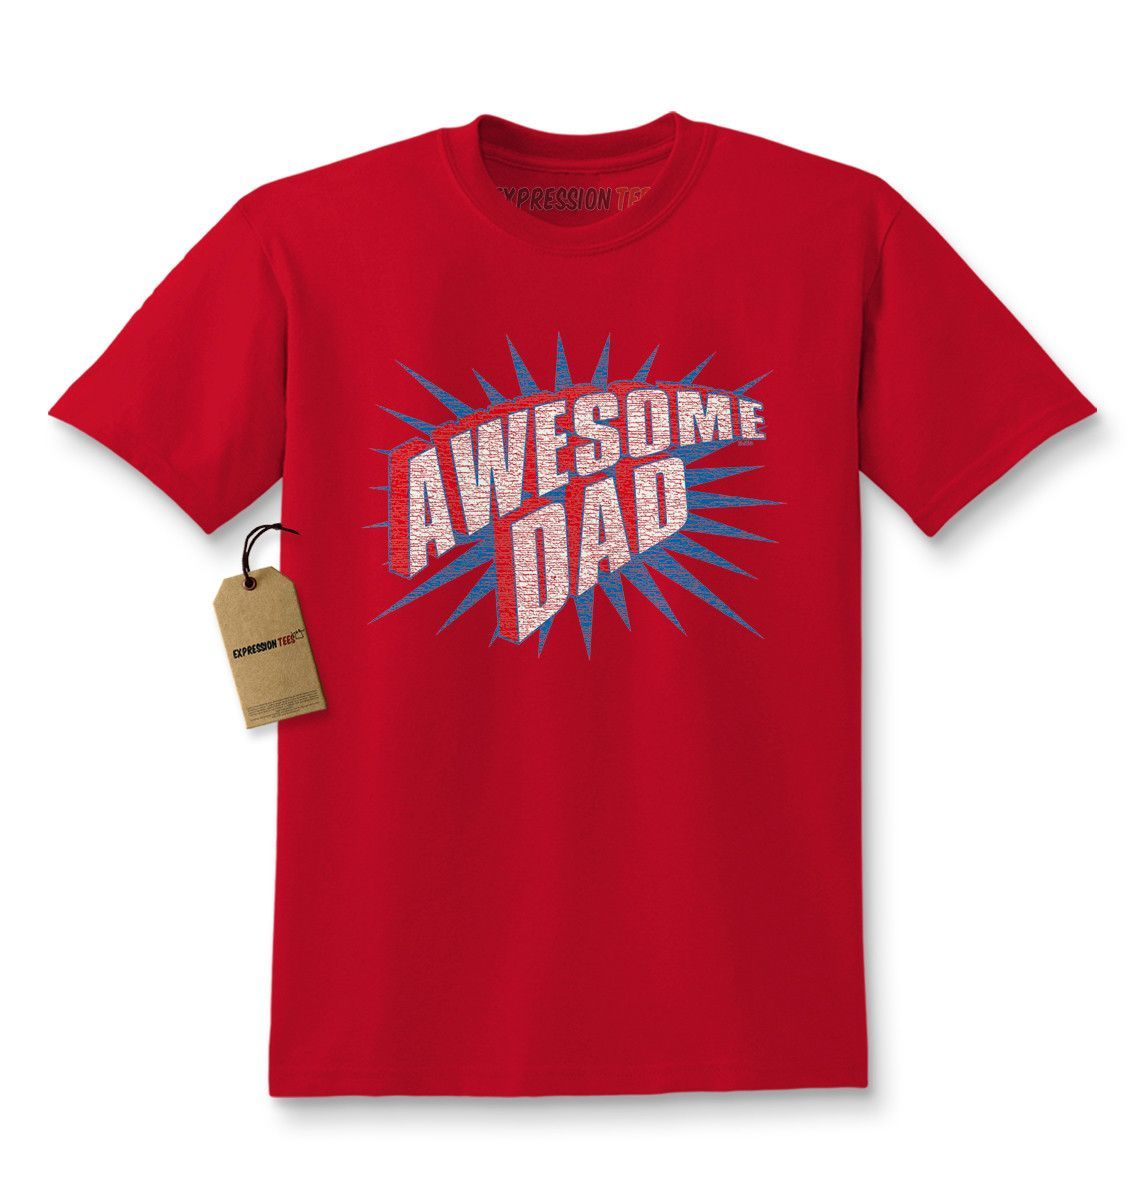 390130c5e6a6 Awesome Dad Kids T-shirt | Father's Day Ideas | Shirts, Trump kids ...